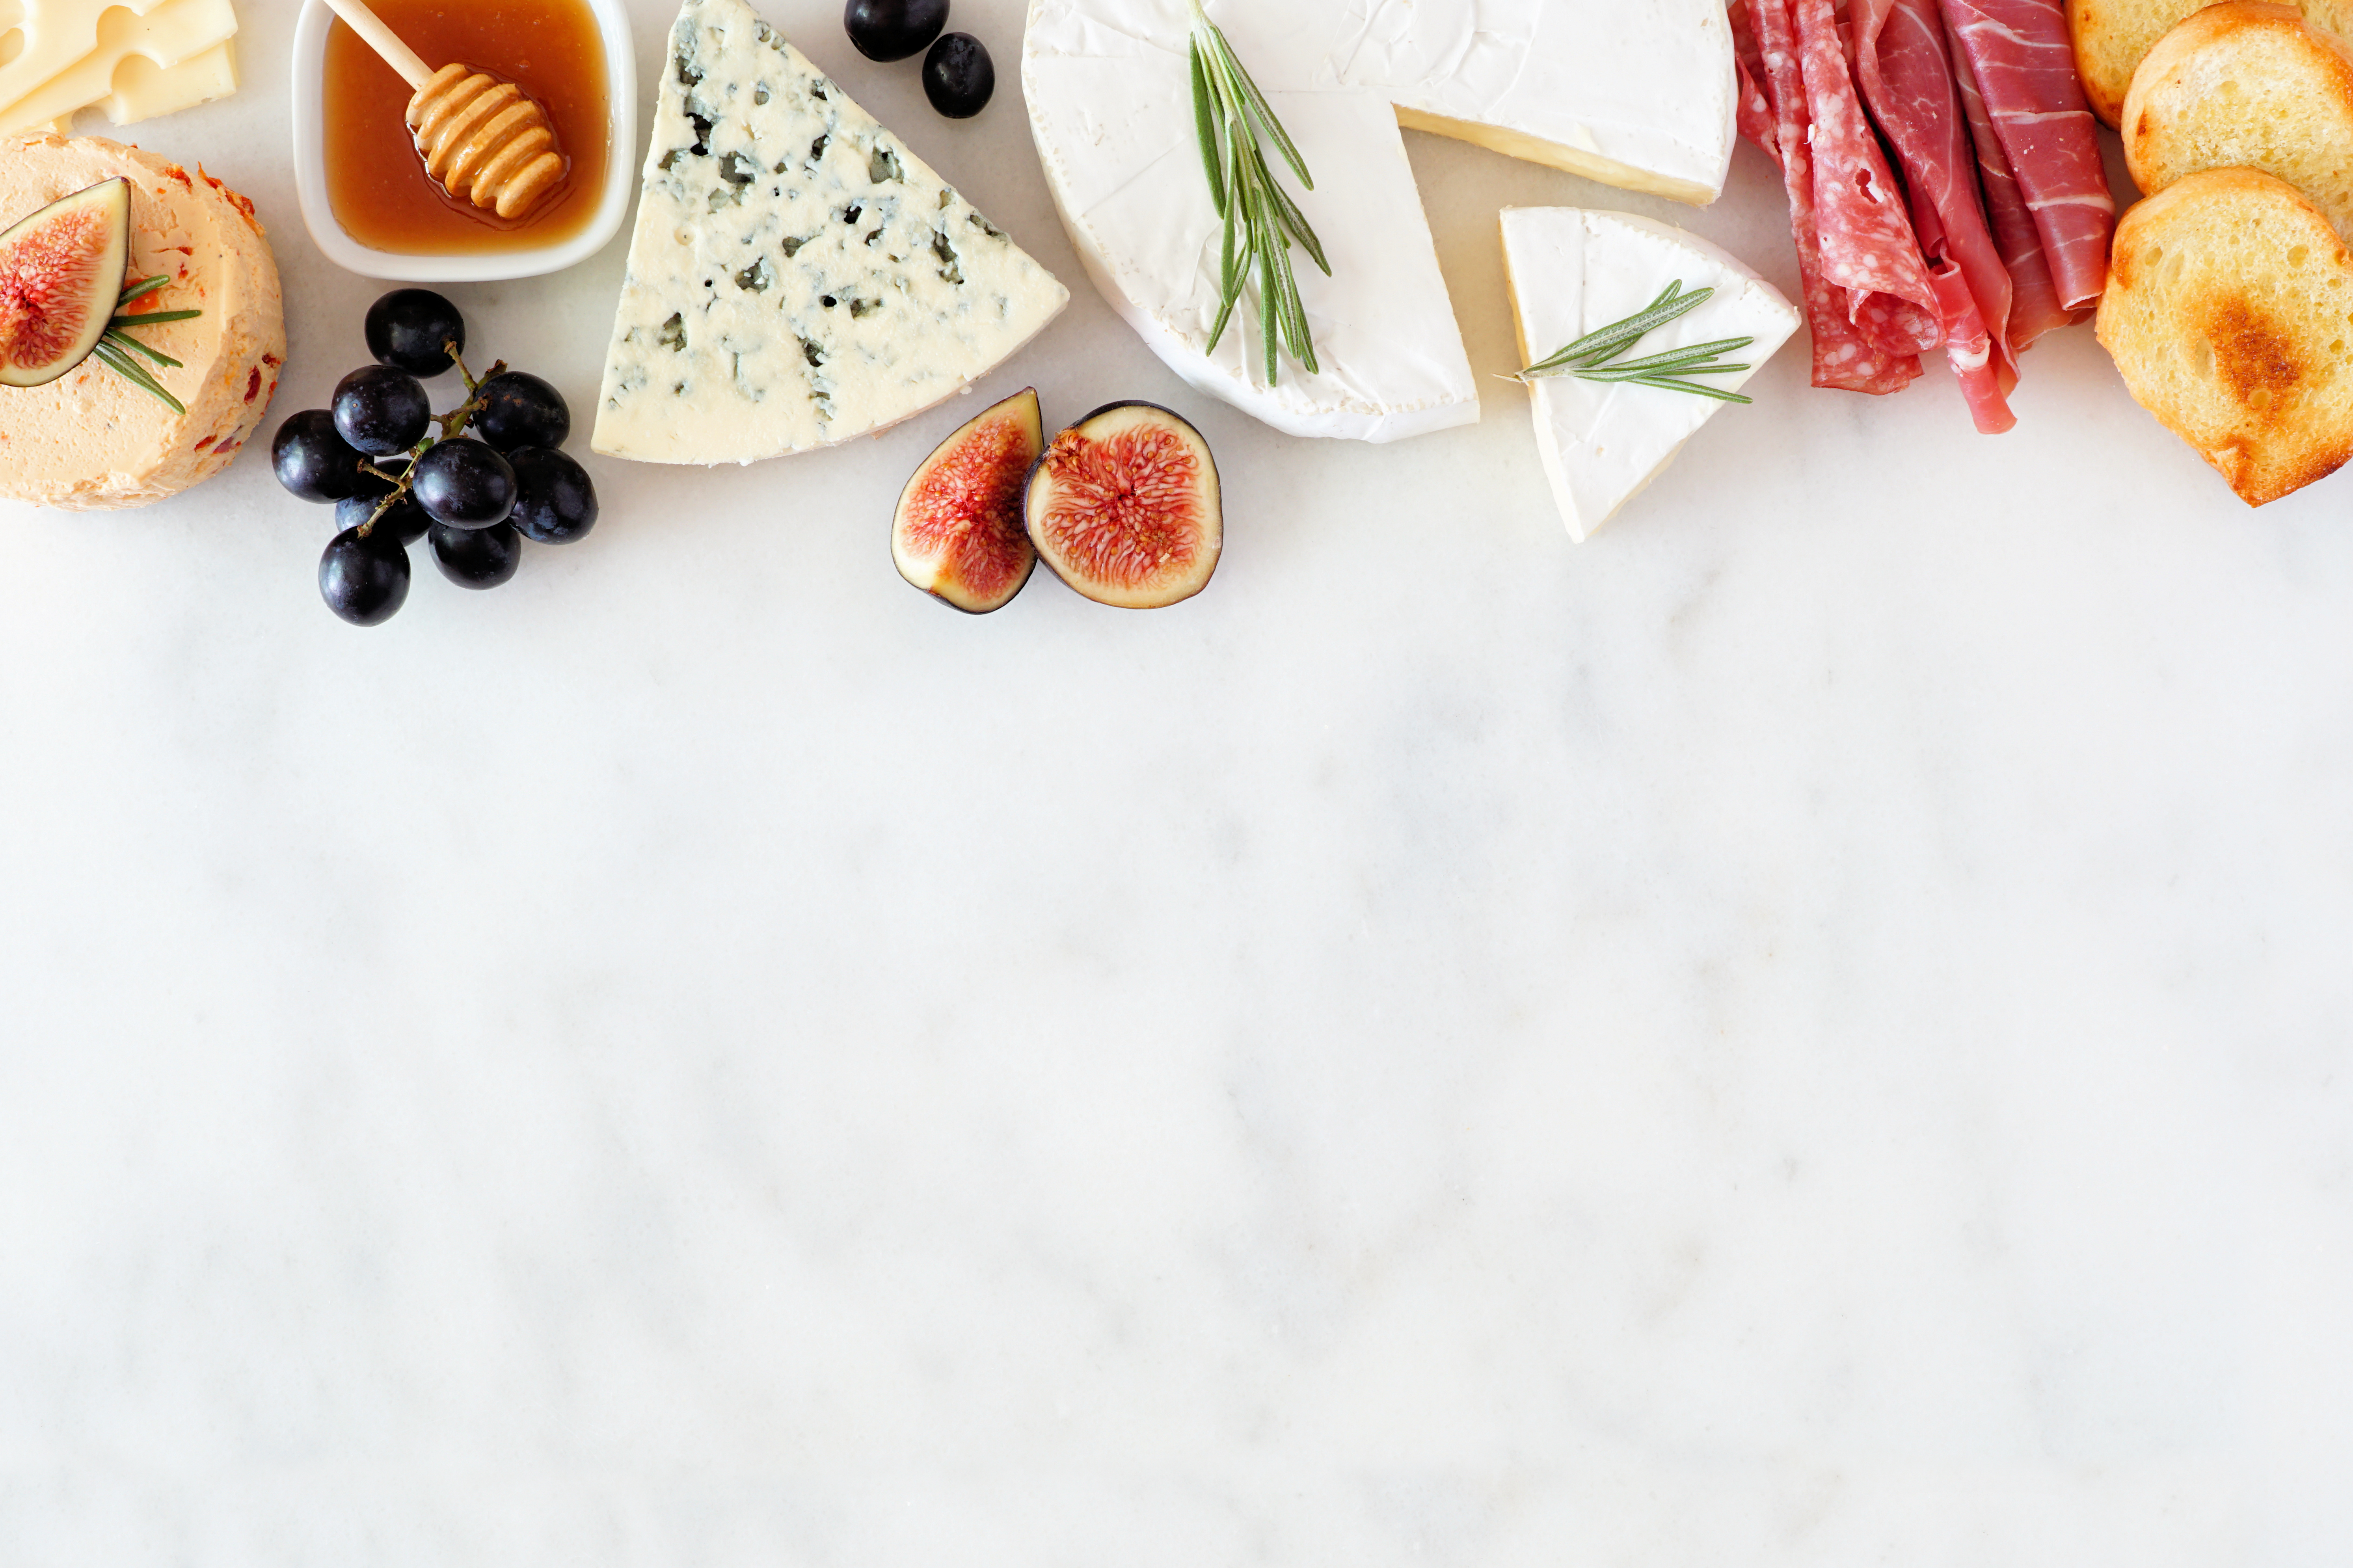 Typical French ingredients (cheeses, meats, a dish of honey, grapes, figs, and bread) arranged decoratively.